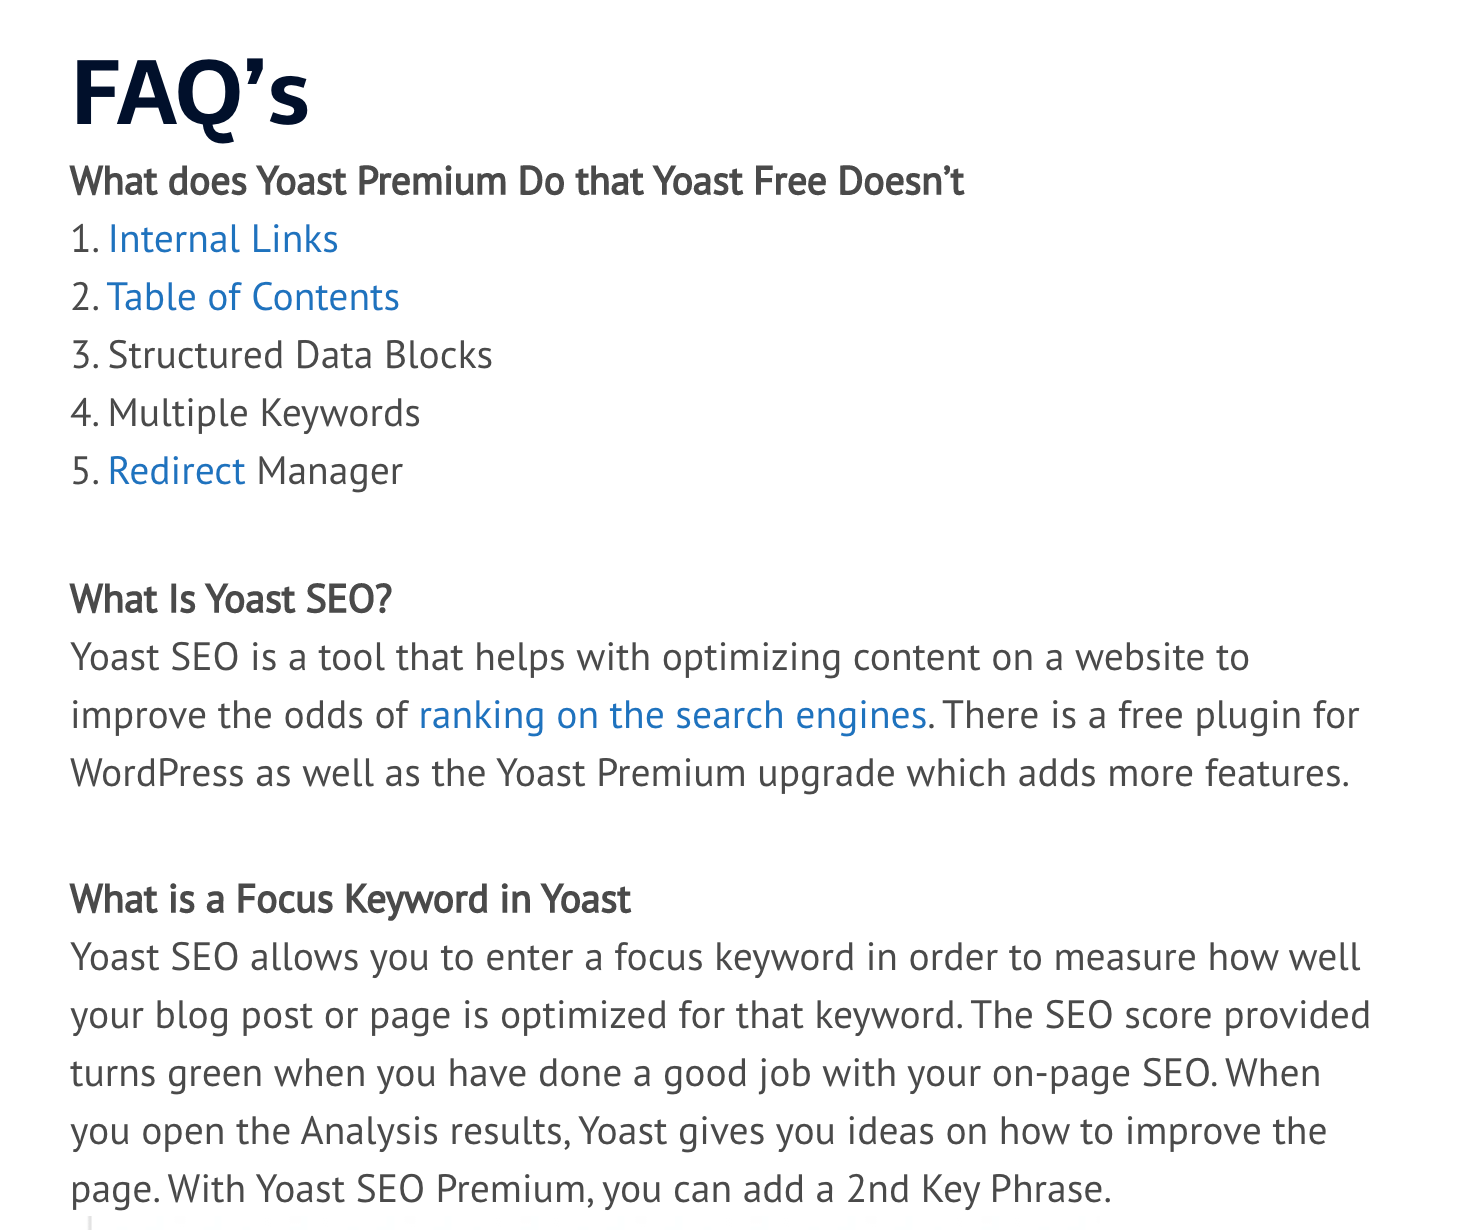 Sample of a FAQ section with the YOAST plugin